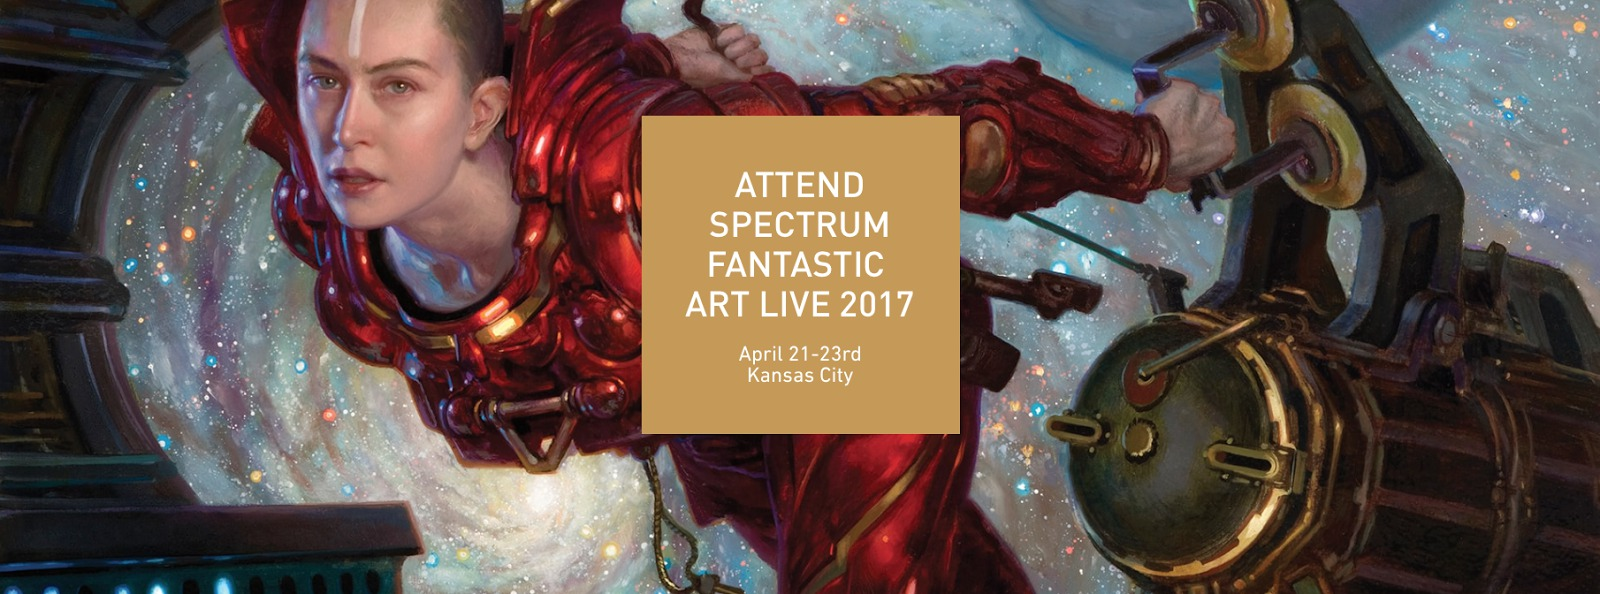 Spectrum Fantastic Art Live 2017: Goin' to Kansas City